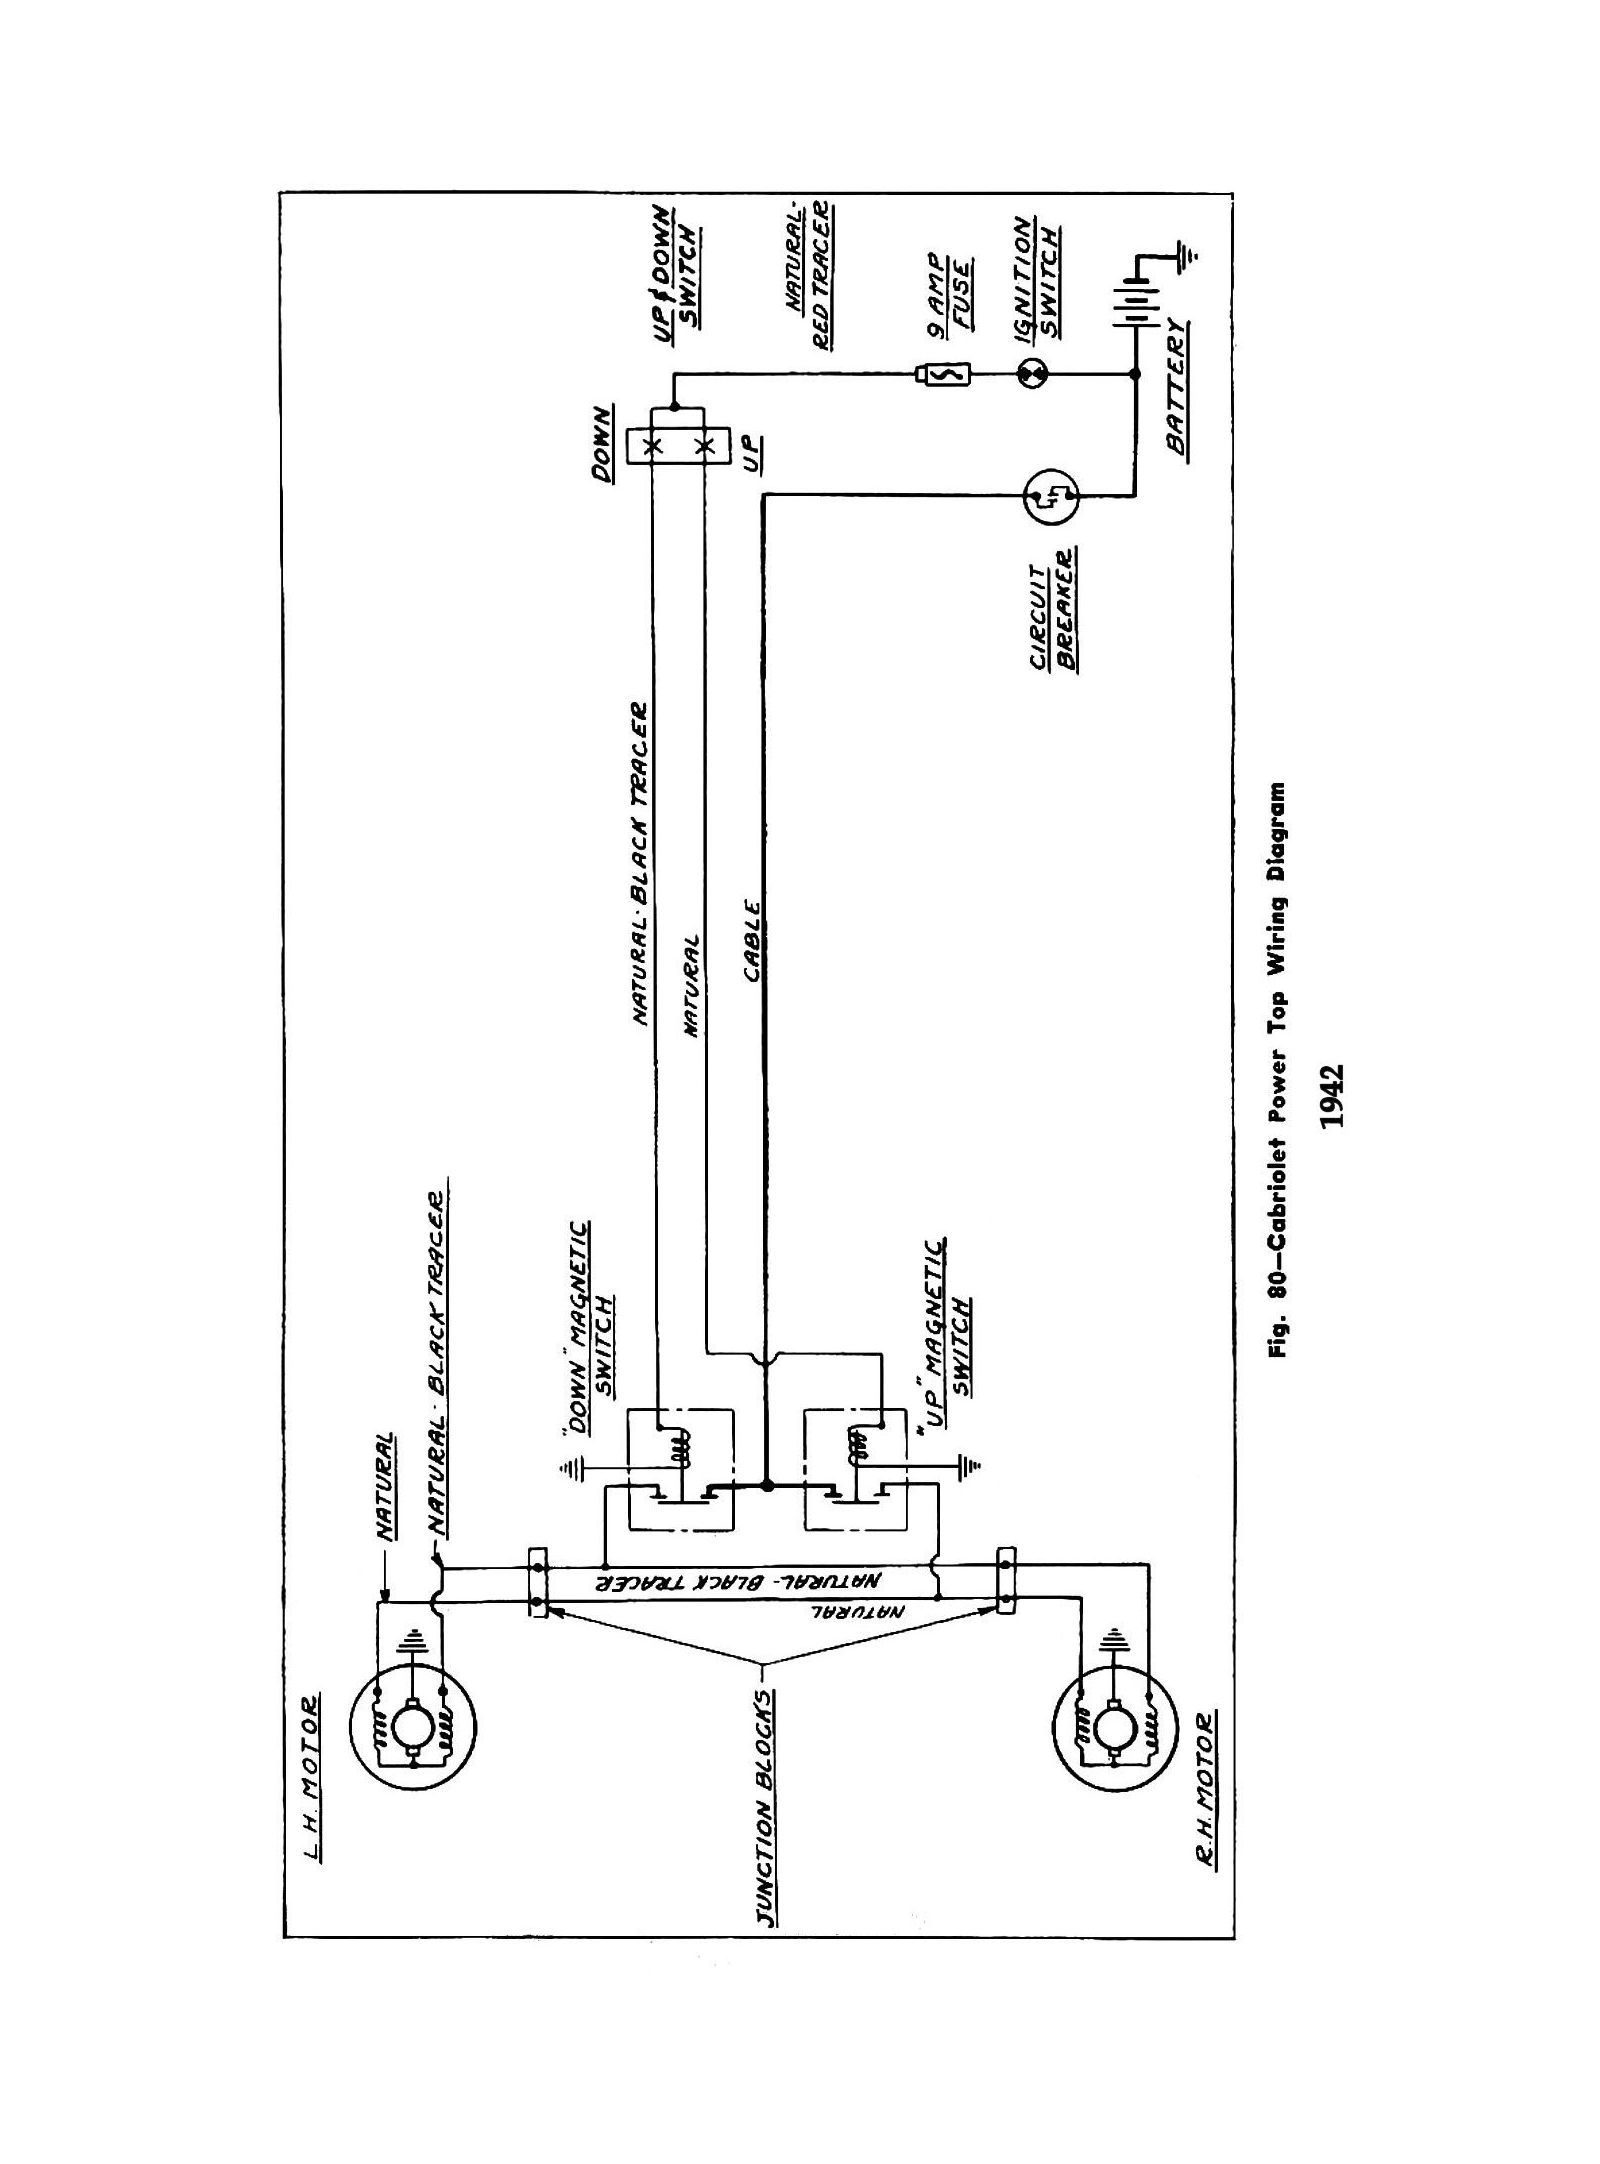 A 500 Fog Lights Wiring Diagram